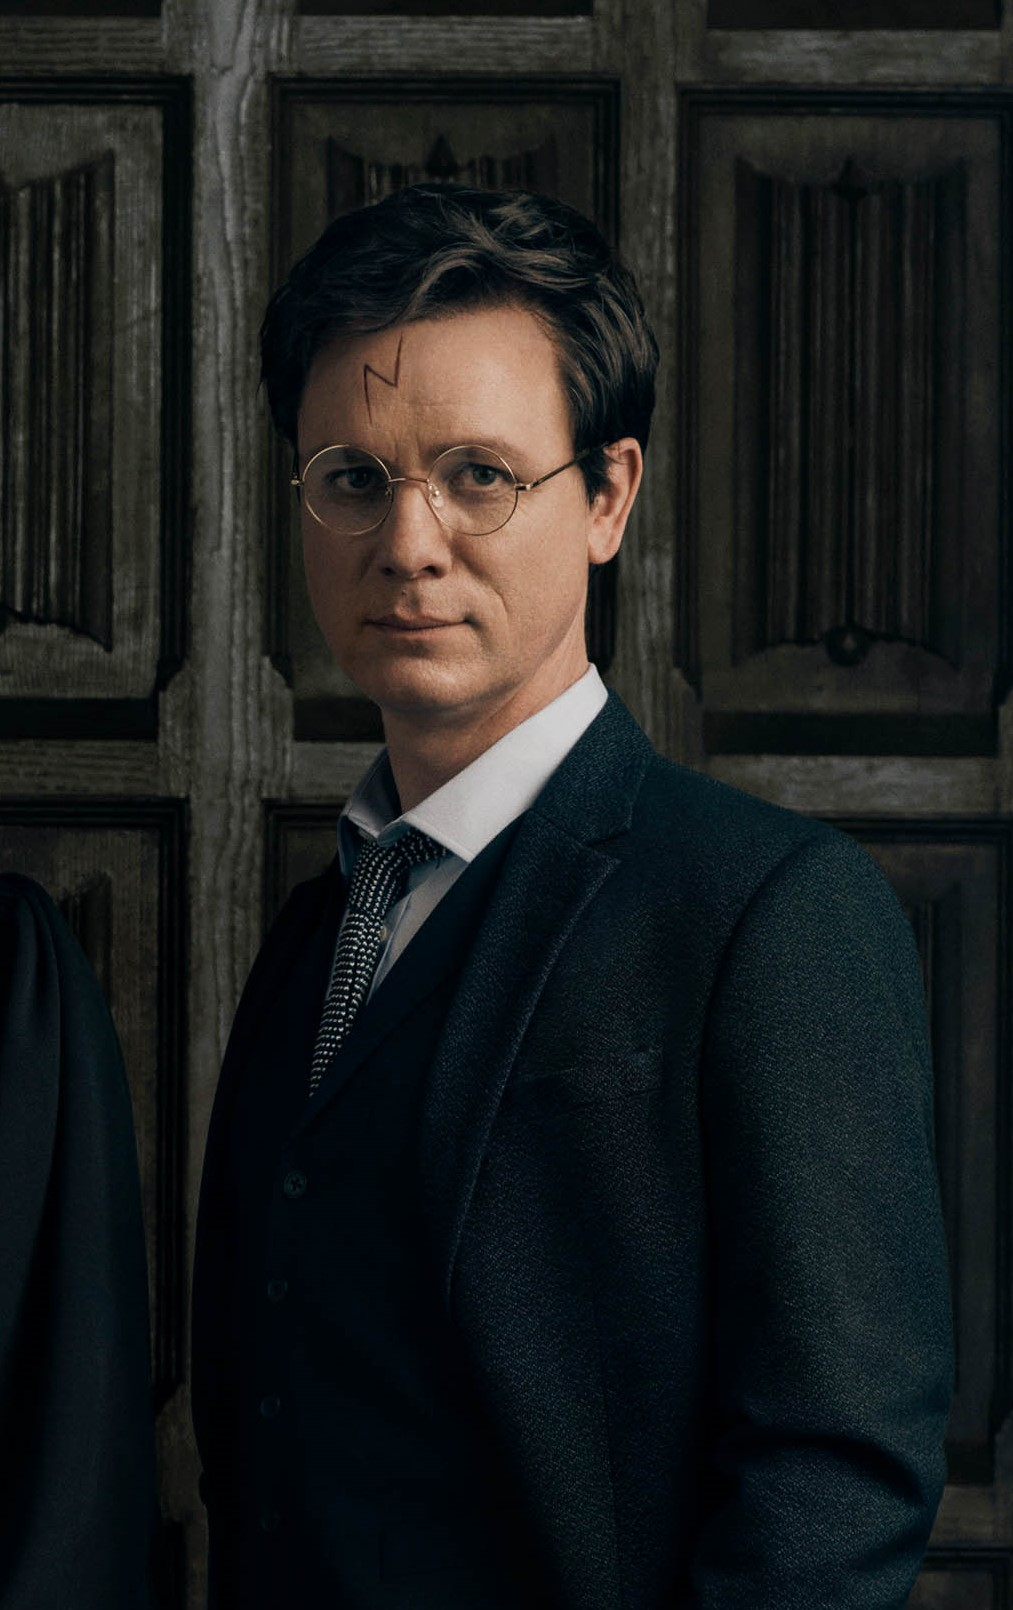 harry-potter-and-the-cursed-child-london-portraits-new-cast-2018-1._the_potters_l-r_susie_trayling_ginny_potter_joe_idris-roberts_albus_potter_and_jamie_ballard_harry_potter_photo_by_charlie_gray_hr.jpg